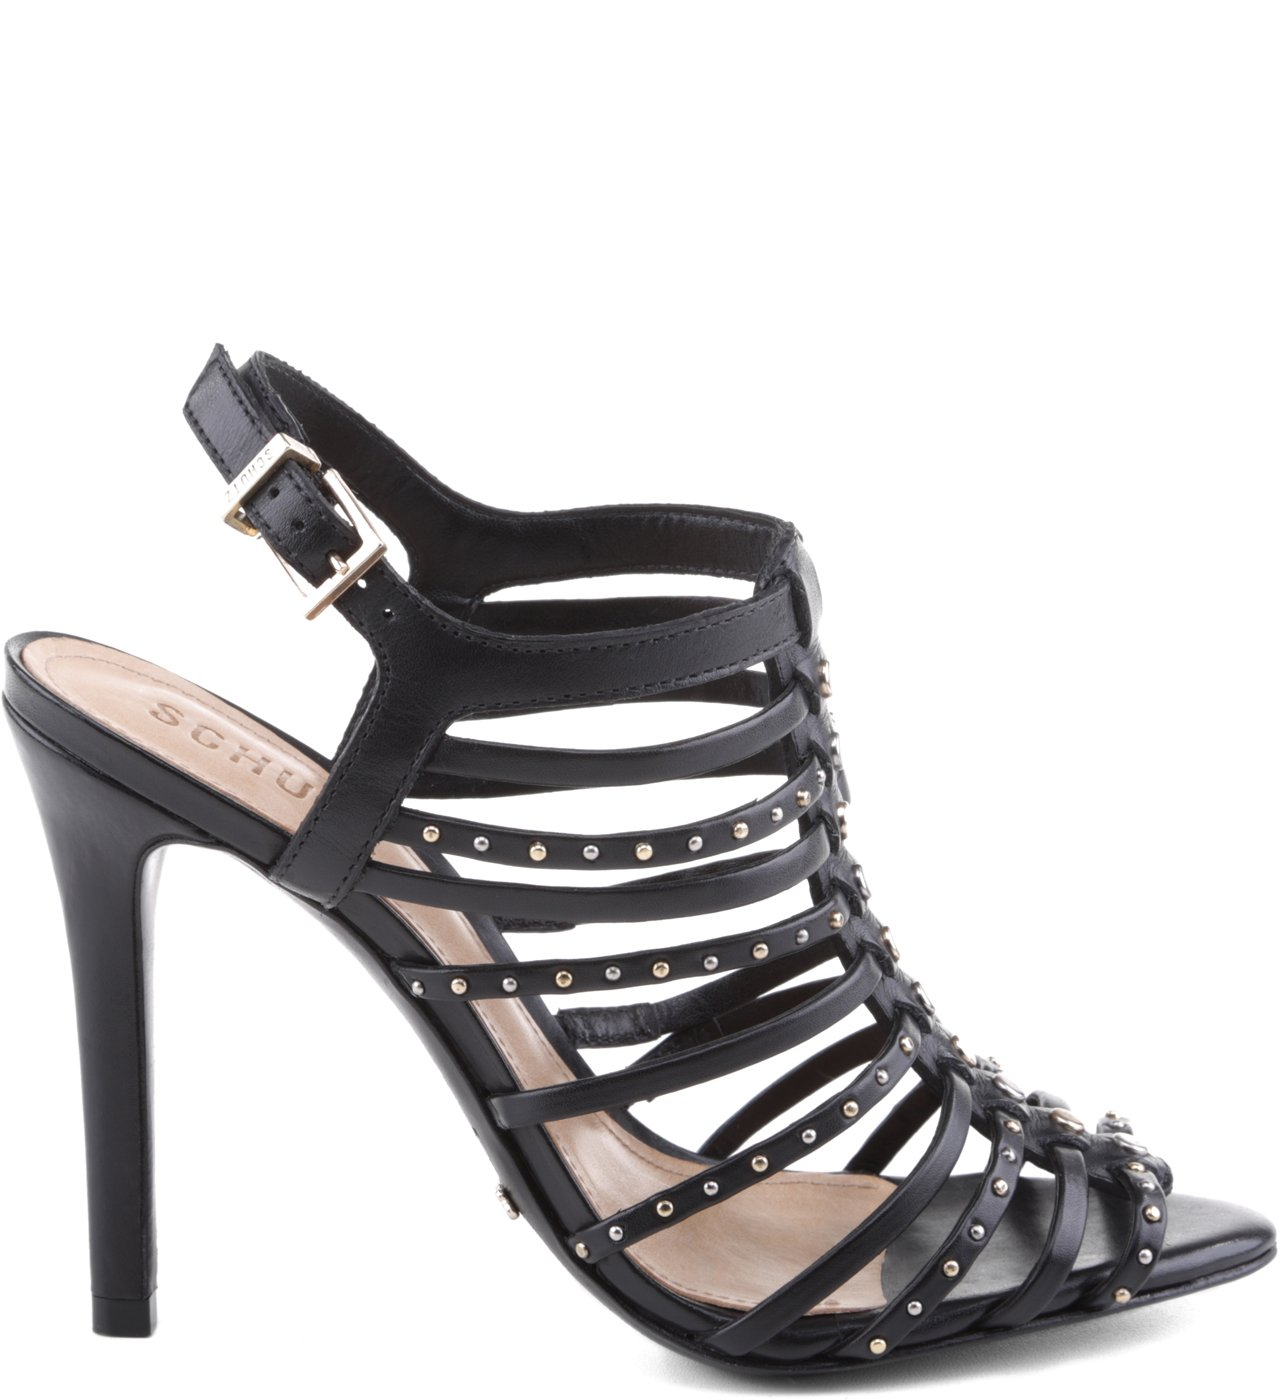 What Shoes With  Black Stripes